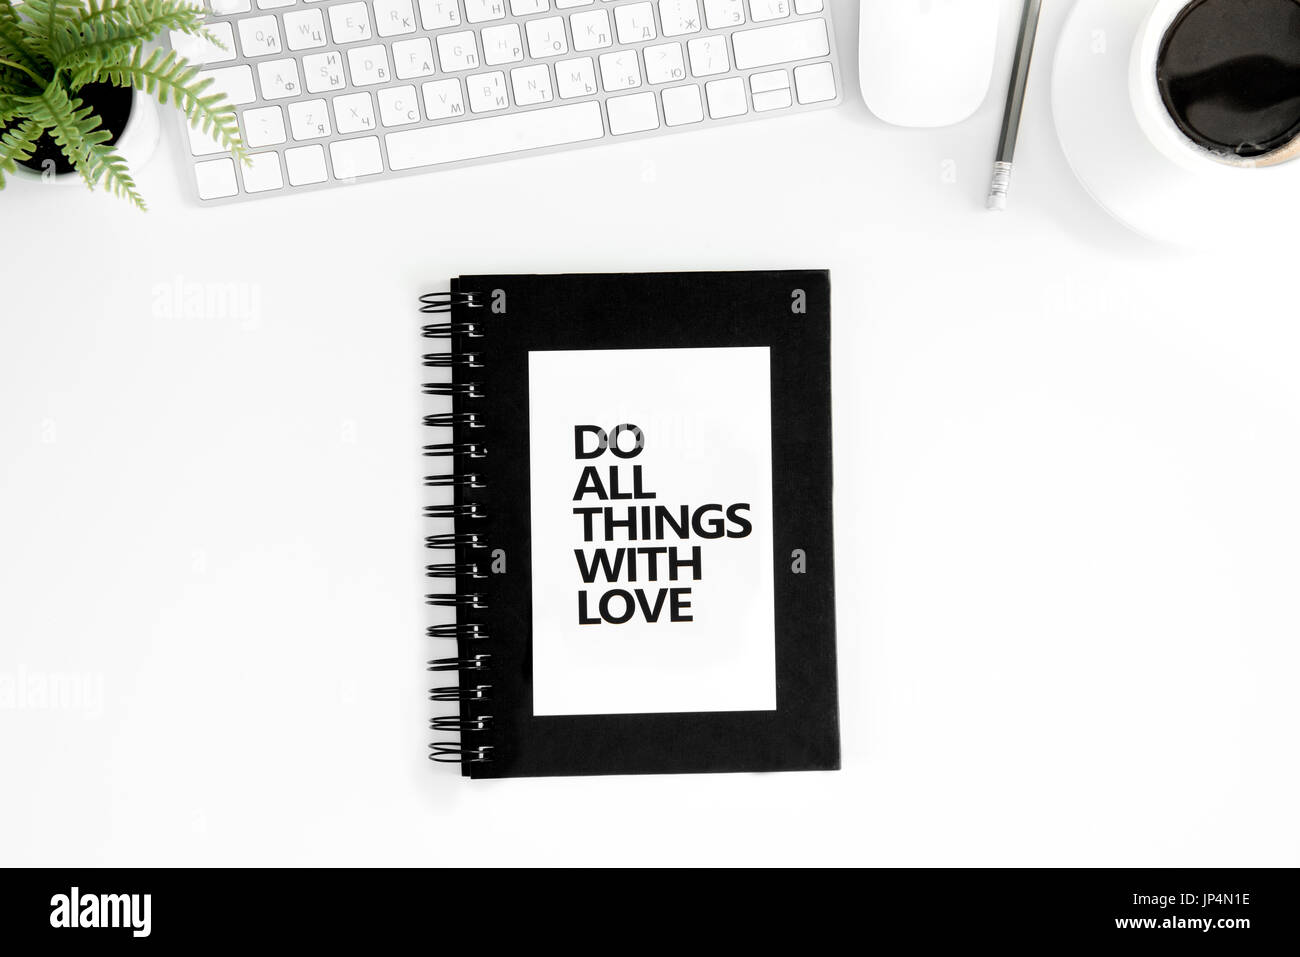 Top view of do all things with love motivational quote, computer mouse and keyboard isolated on white Stock Photo